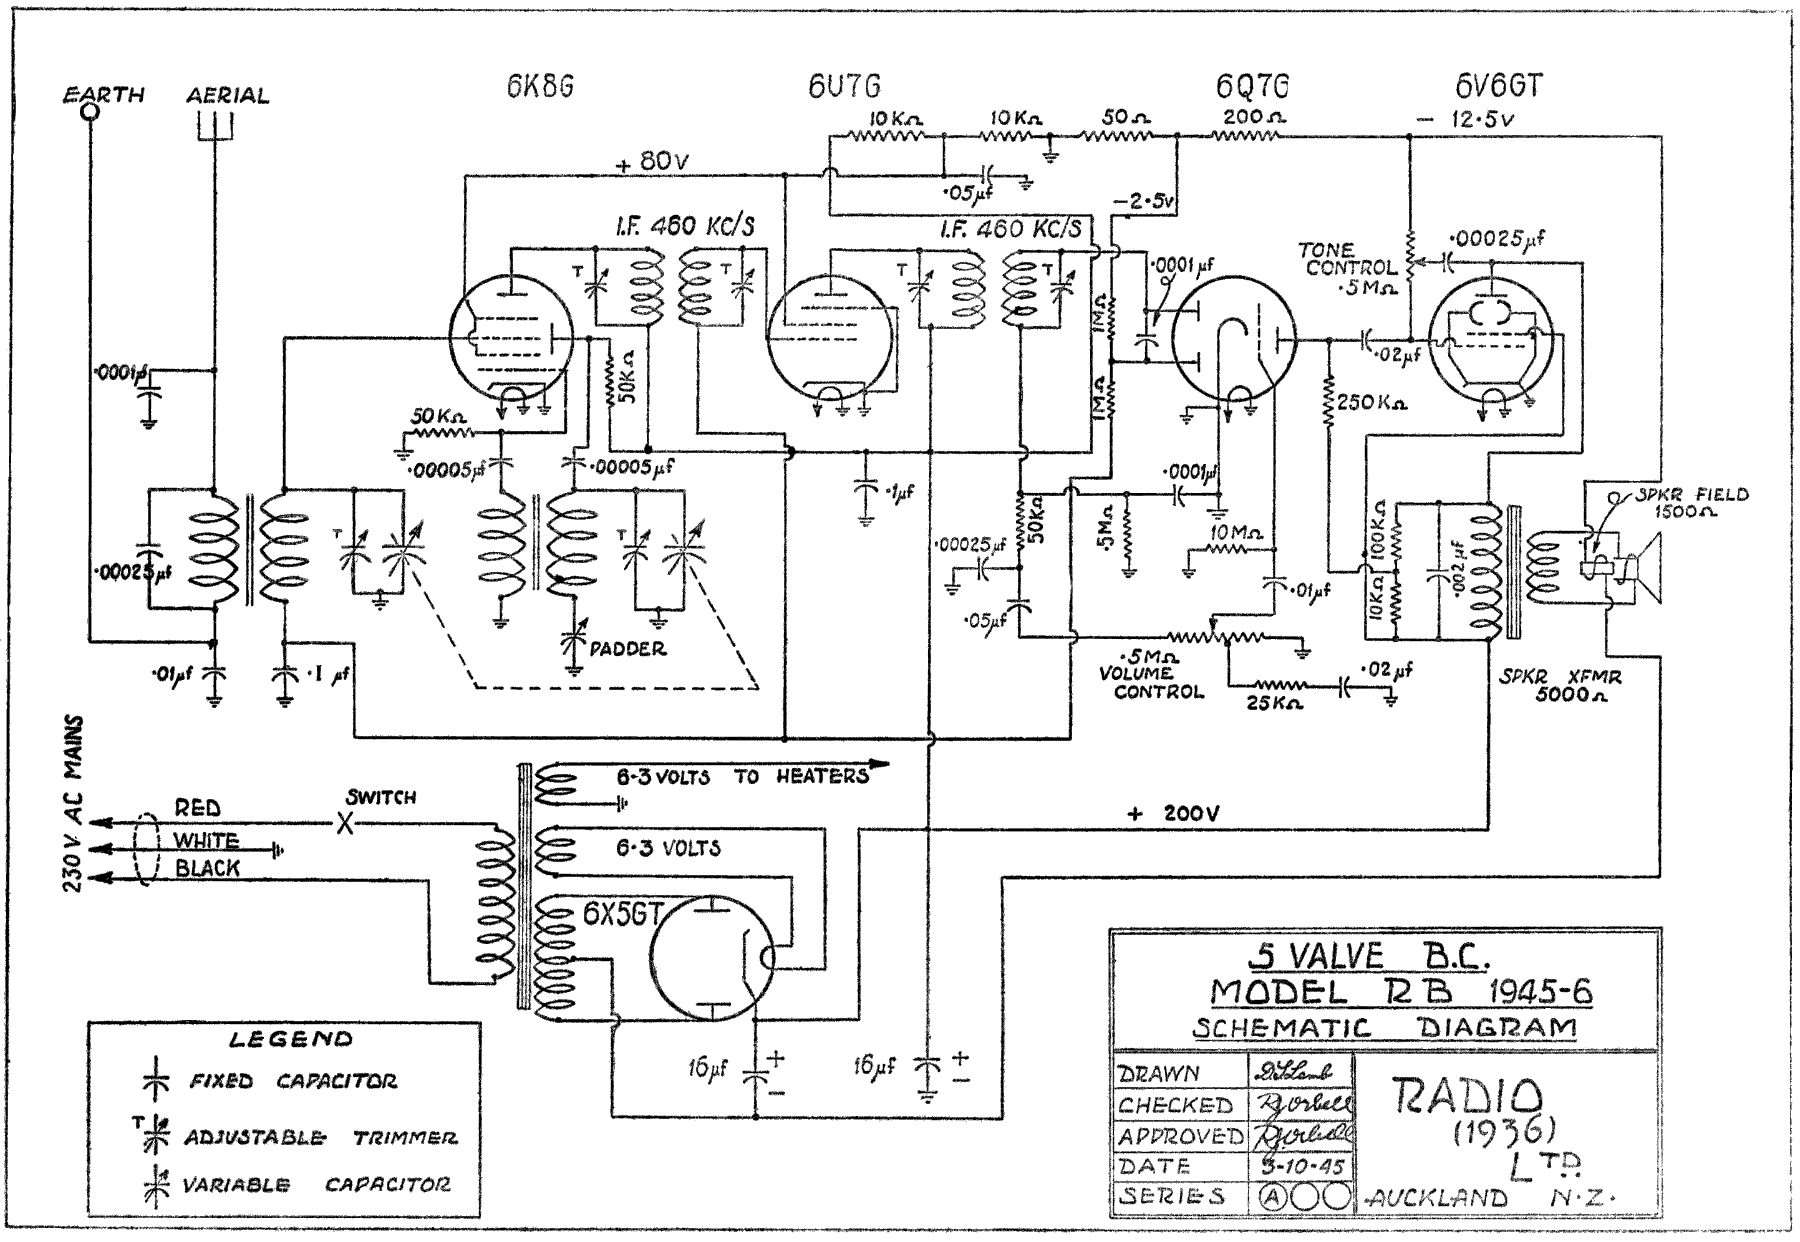 1945 Ultimate RB Schematic